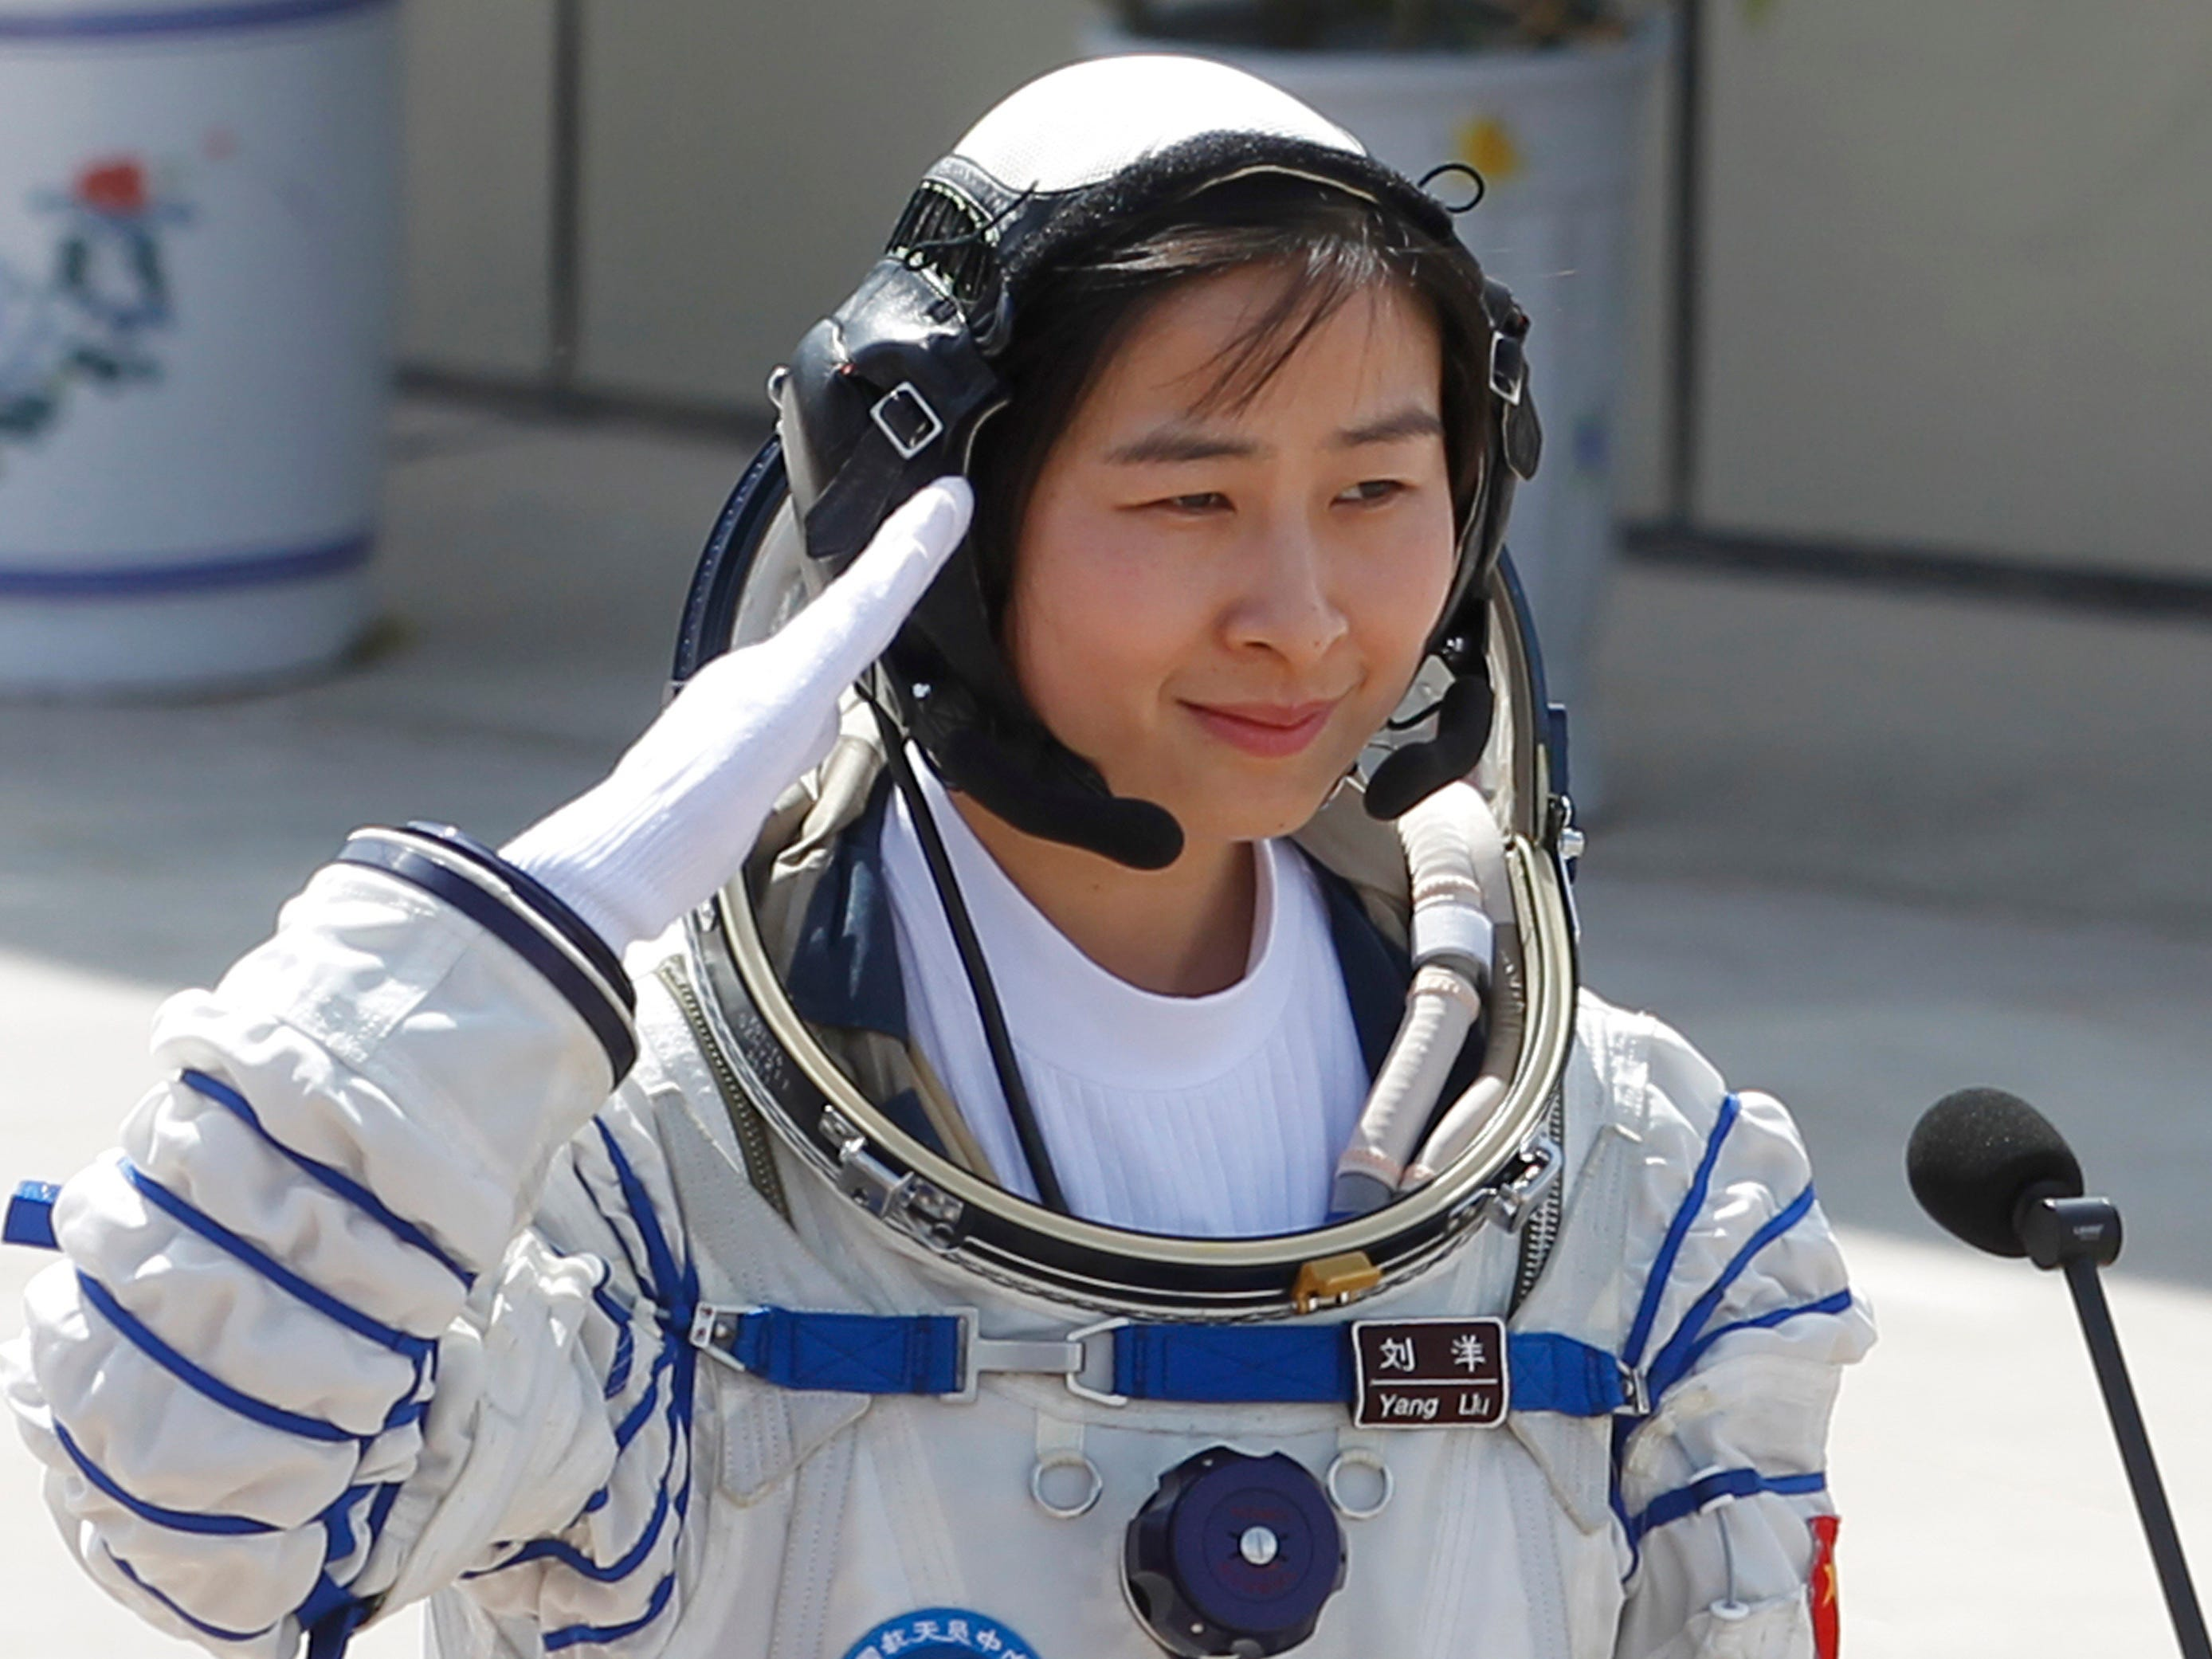 China's first female astronaut Liu Yang salutes during a sending off ceremony as she departs for the Shenzhou 9 spacecraft rocket launch pad at the Jiuquan Satellite Launch Center in Jiuquan, China, Saturday, June 16, 2012. China sent its first woman and two other astronauts into space Saturday to work on a temporary space station for about a week, in a key step toward becoming only the third nation to set up a permanent base in orbit.